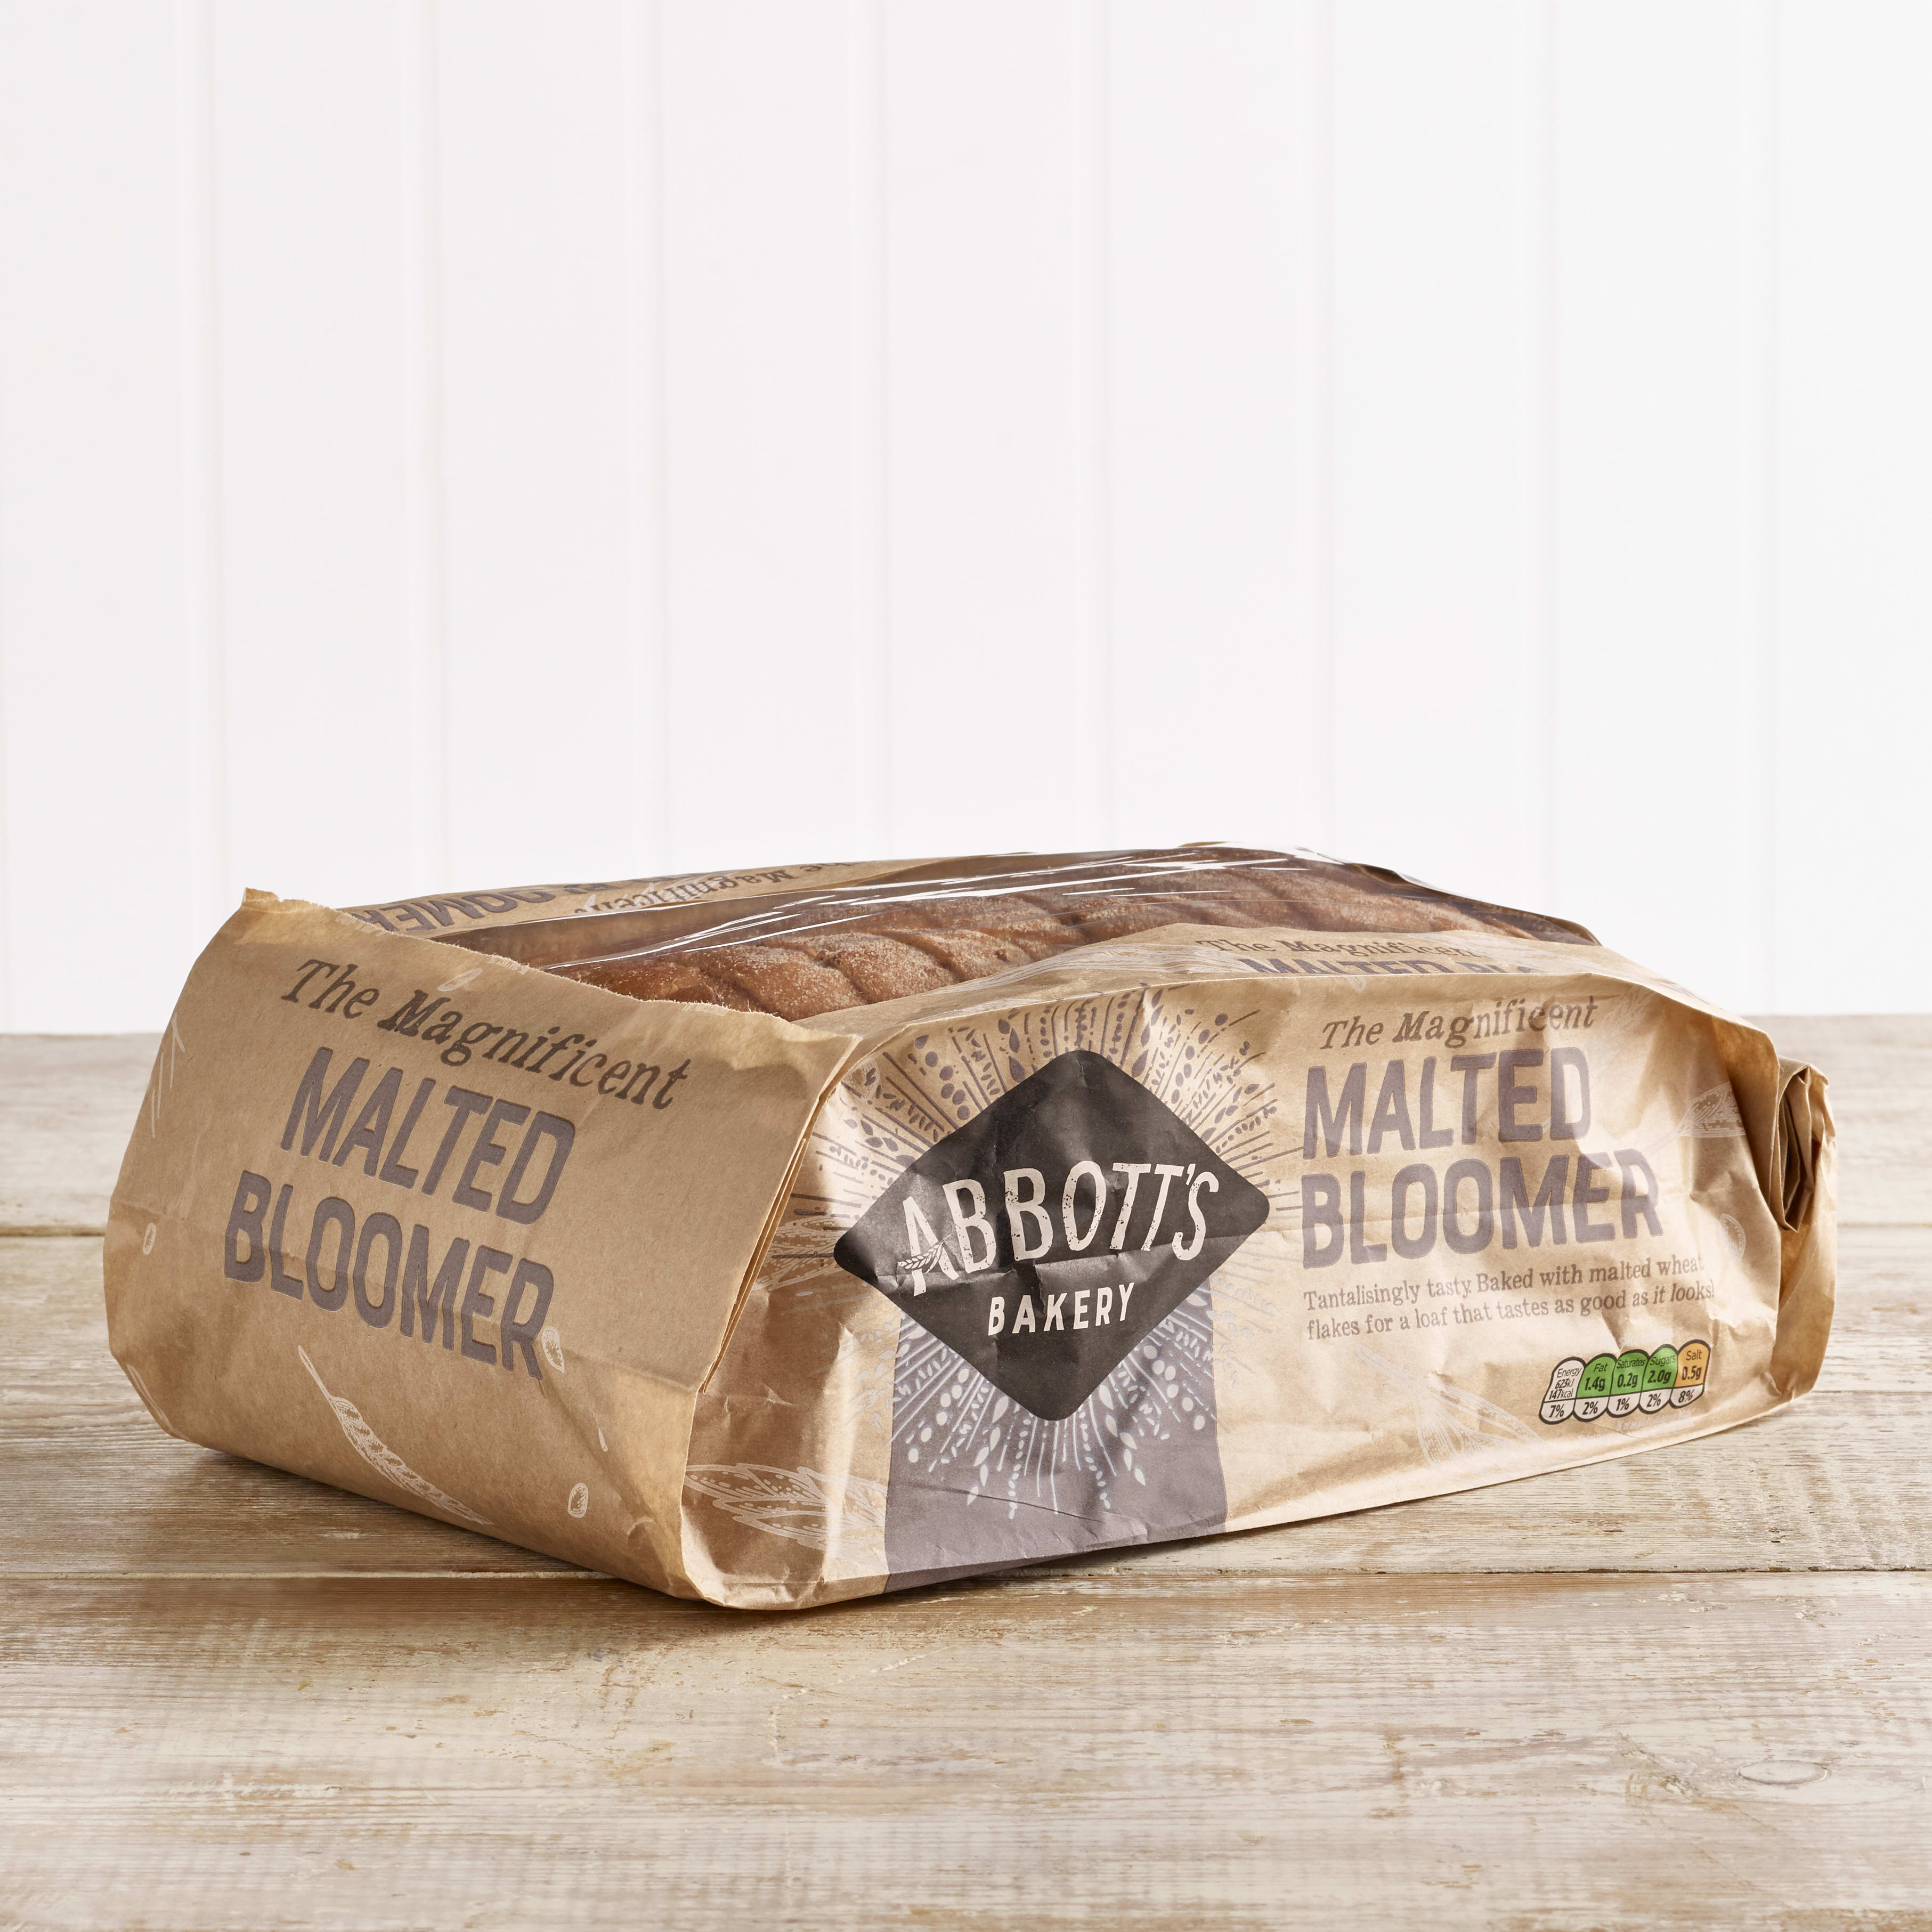 Abbott's Bakery Malted Bloomer Loaf, 800g